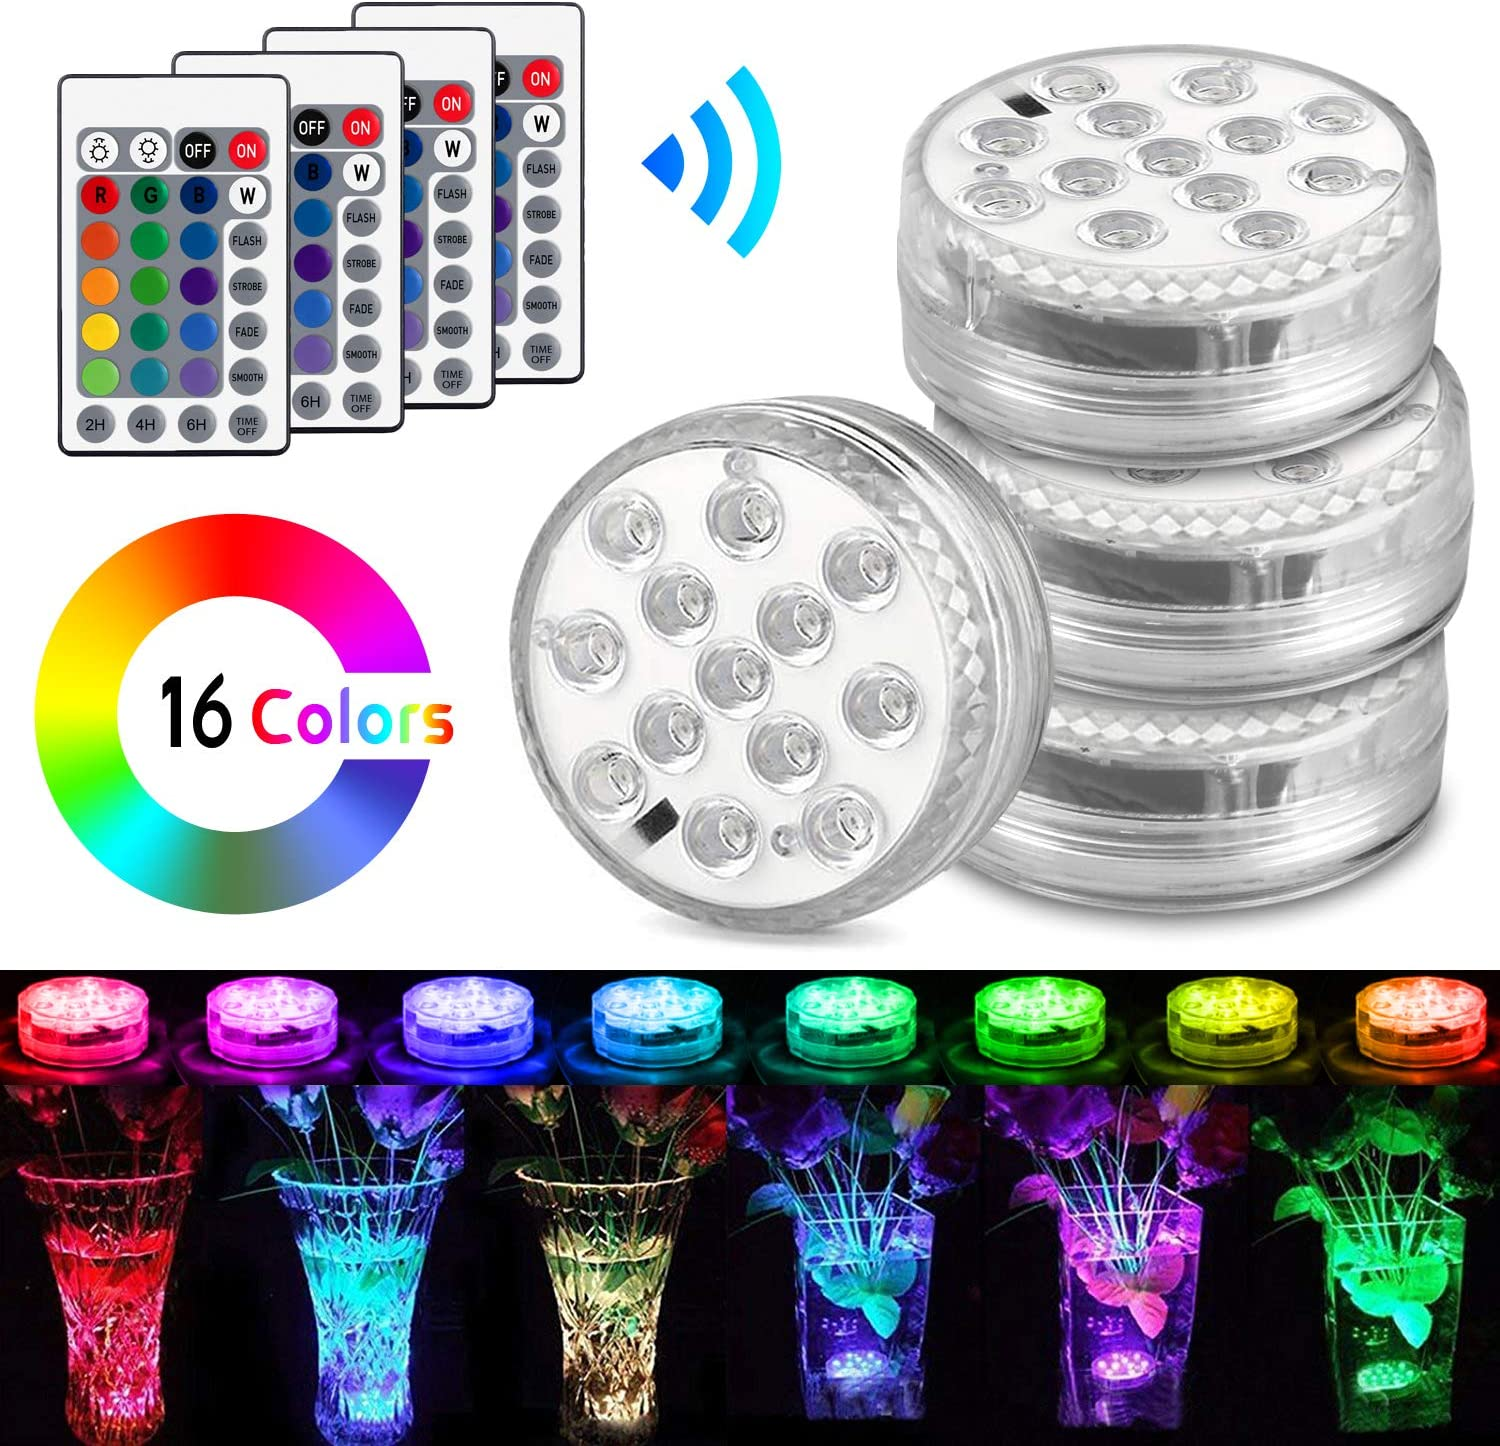 Luces Sumergibles, AODOOR Luz LED Impermeable, RGB Multicolores